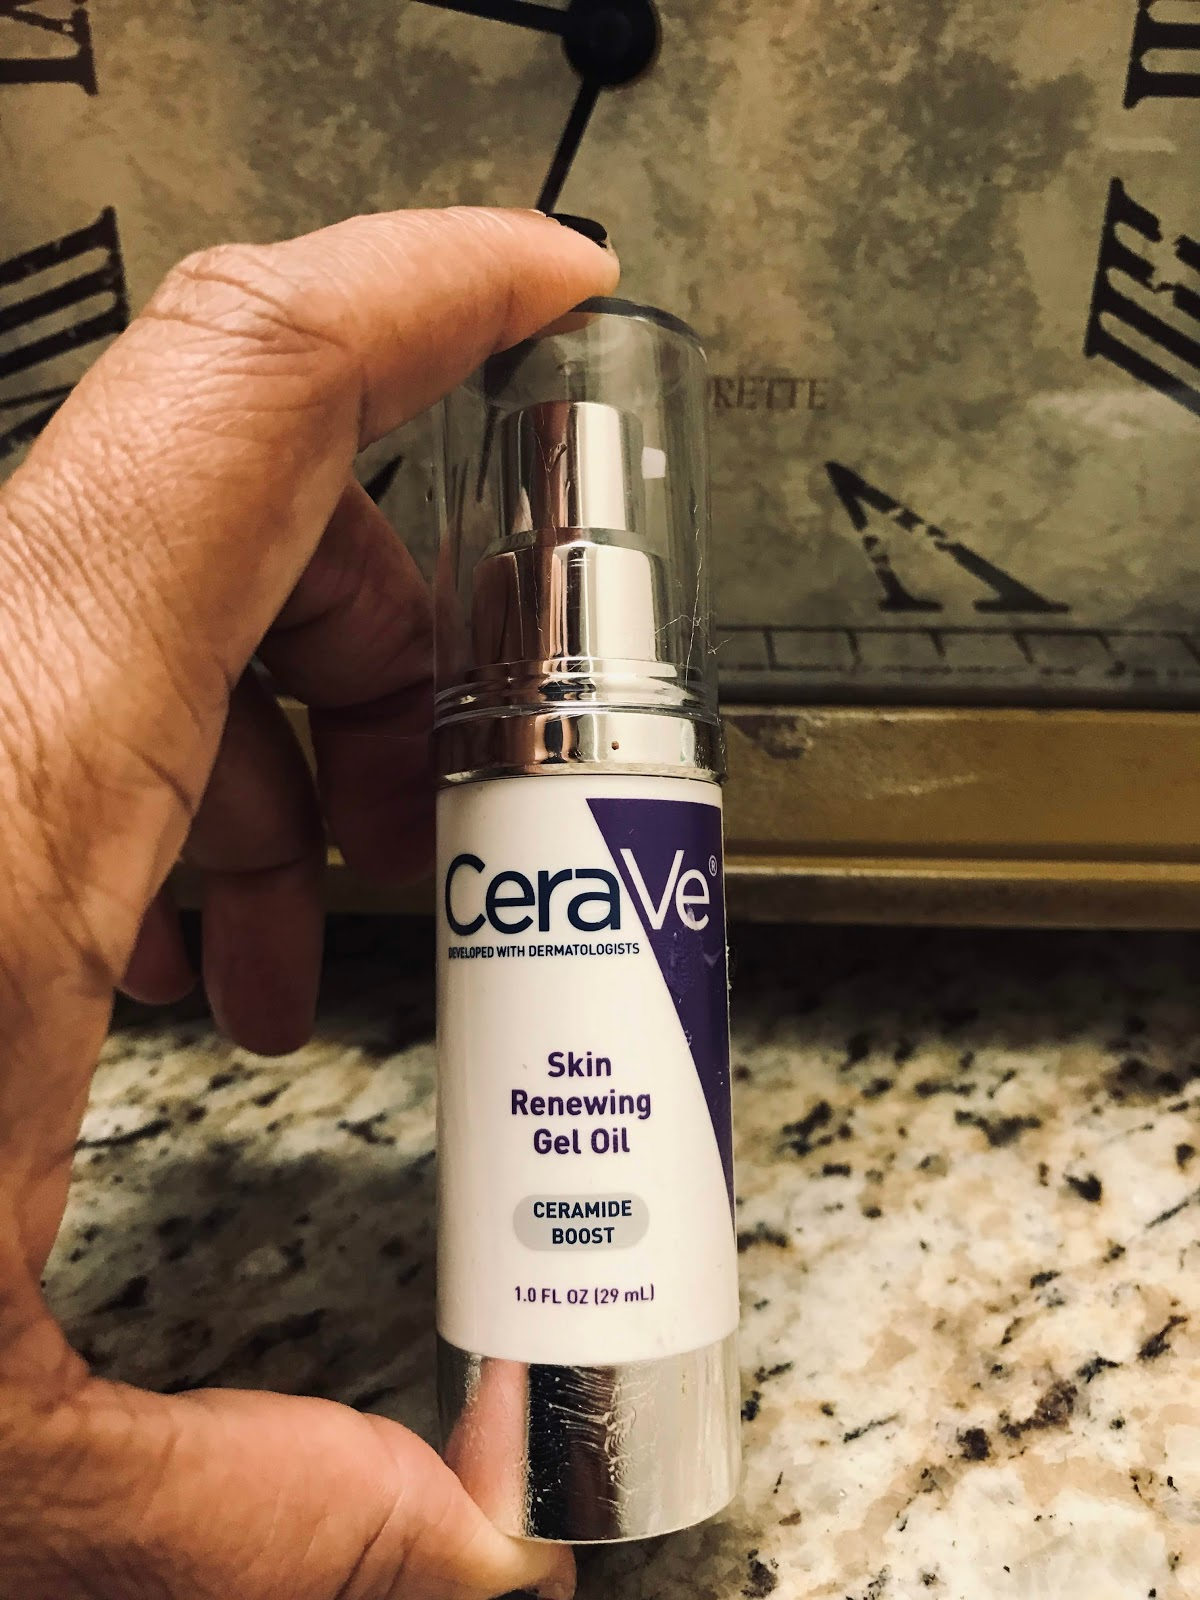 Image: Woman holding CeraVe Oil for review. Oh my goodness this is a bit of heaven in a jar. I am not playing with you guys. it's small and a bit pricey (runs around 22 dollars) but it is so worth it. If you want that glowy and dewy skin feel and look. Hands down this are the product to grab. I will be buying two more bottles to keep under my cabinets. Because when I find something that is good and it works I will buy me a stash to keep as if the store is going to stop selling it. It has a silky and velvety feel that instantly improves skin radiance. After trying it, I can say it does just what it promises.